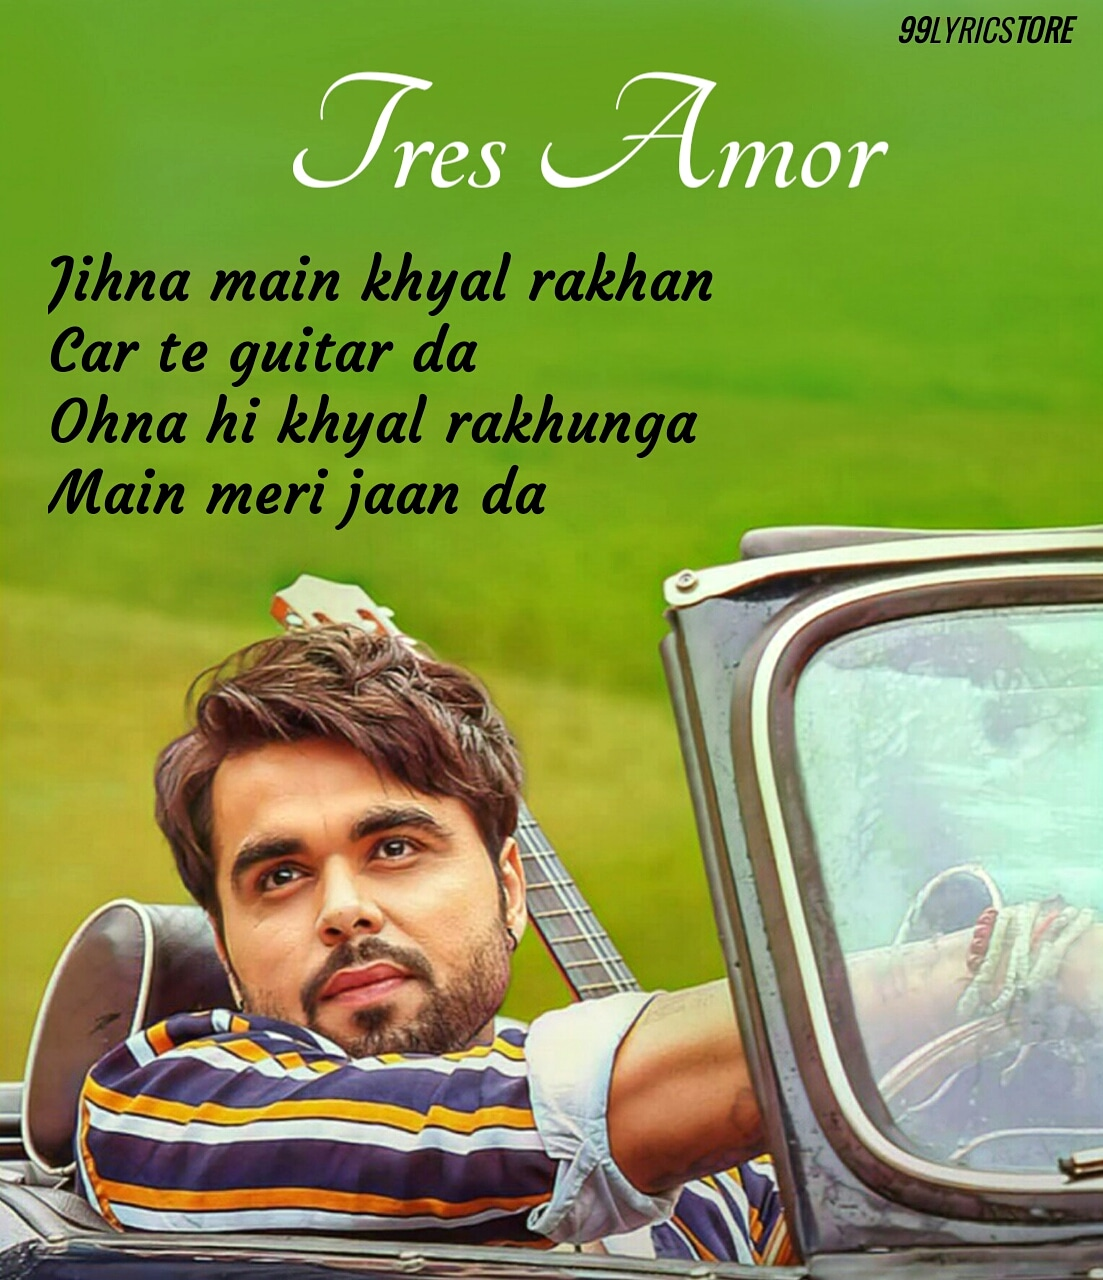 Tres Amor Punjabi Song Lyrics Sung by Ninja and written by Nirmaan